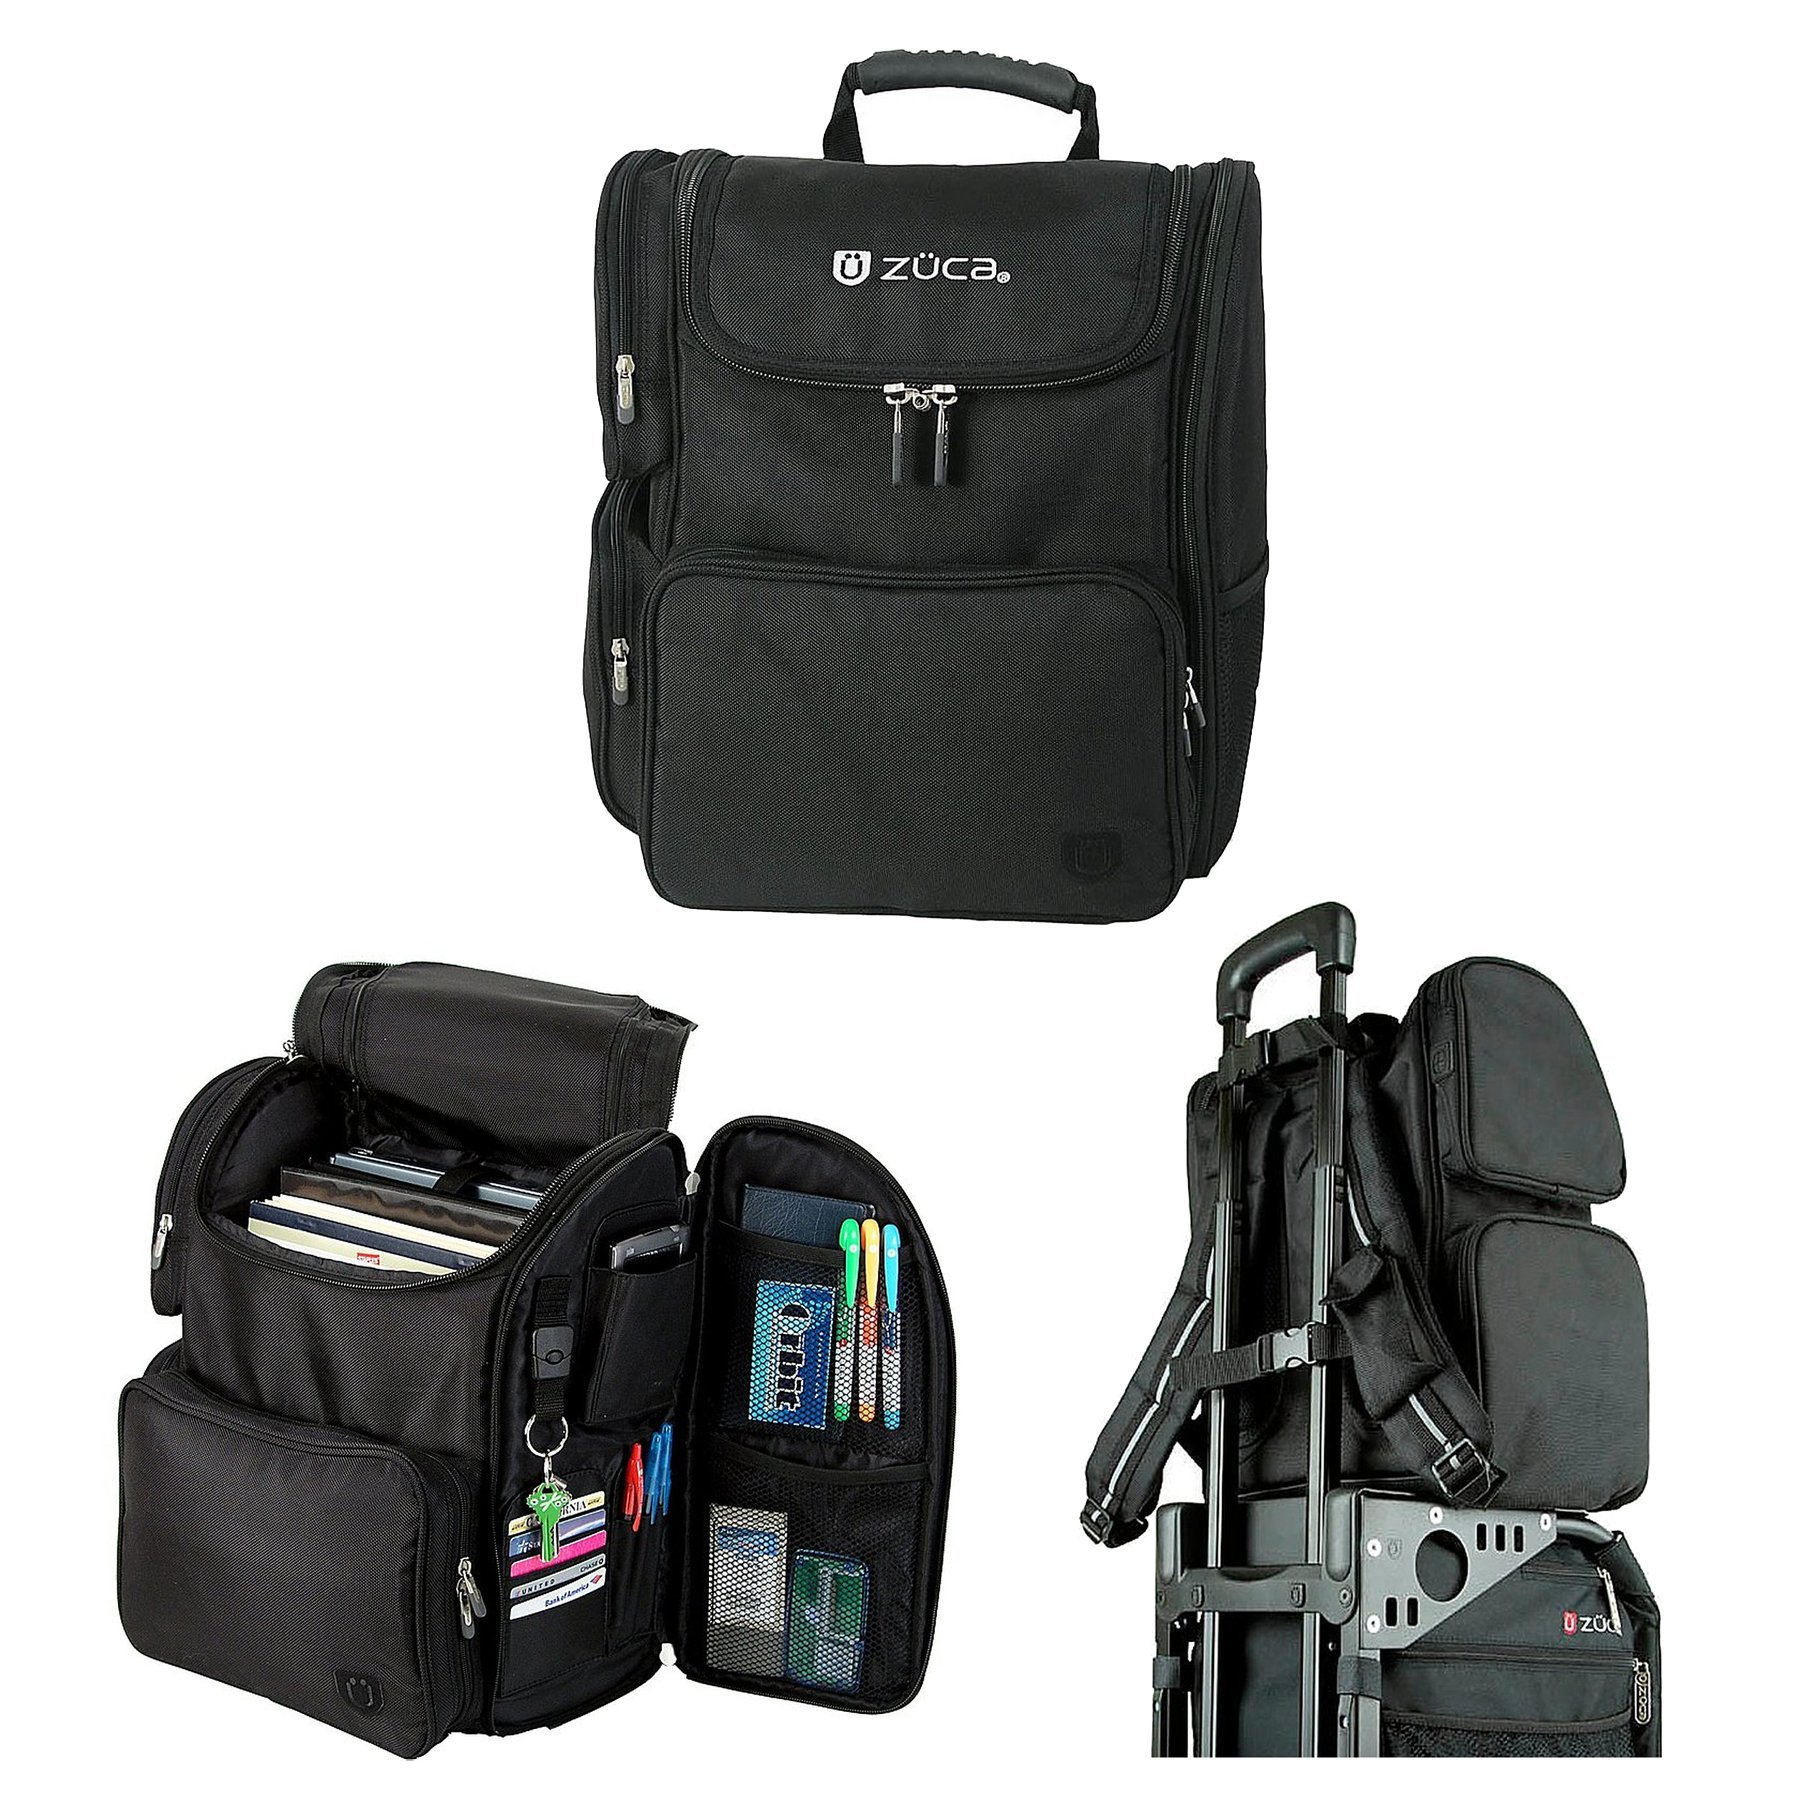 ZUCA Duo: Flyer Travel, Black Bag with Black Frame, Business Backpack and 3 Gift Document Organizers by ZUCA